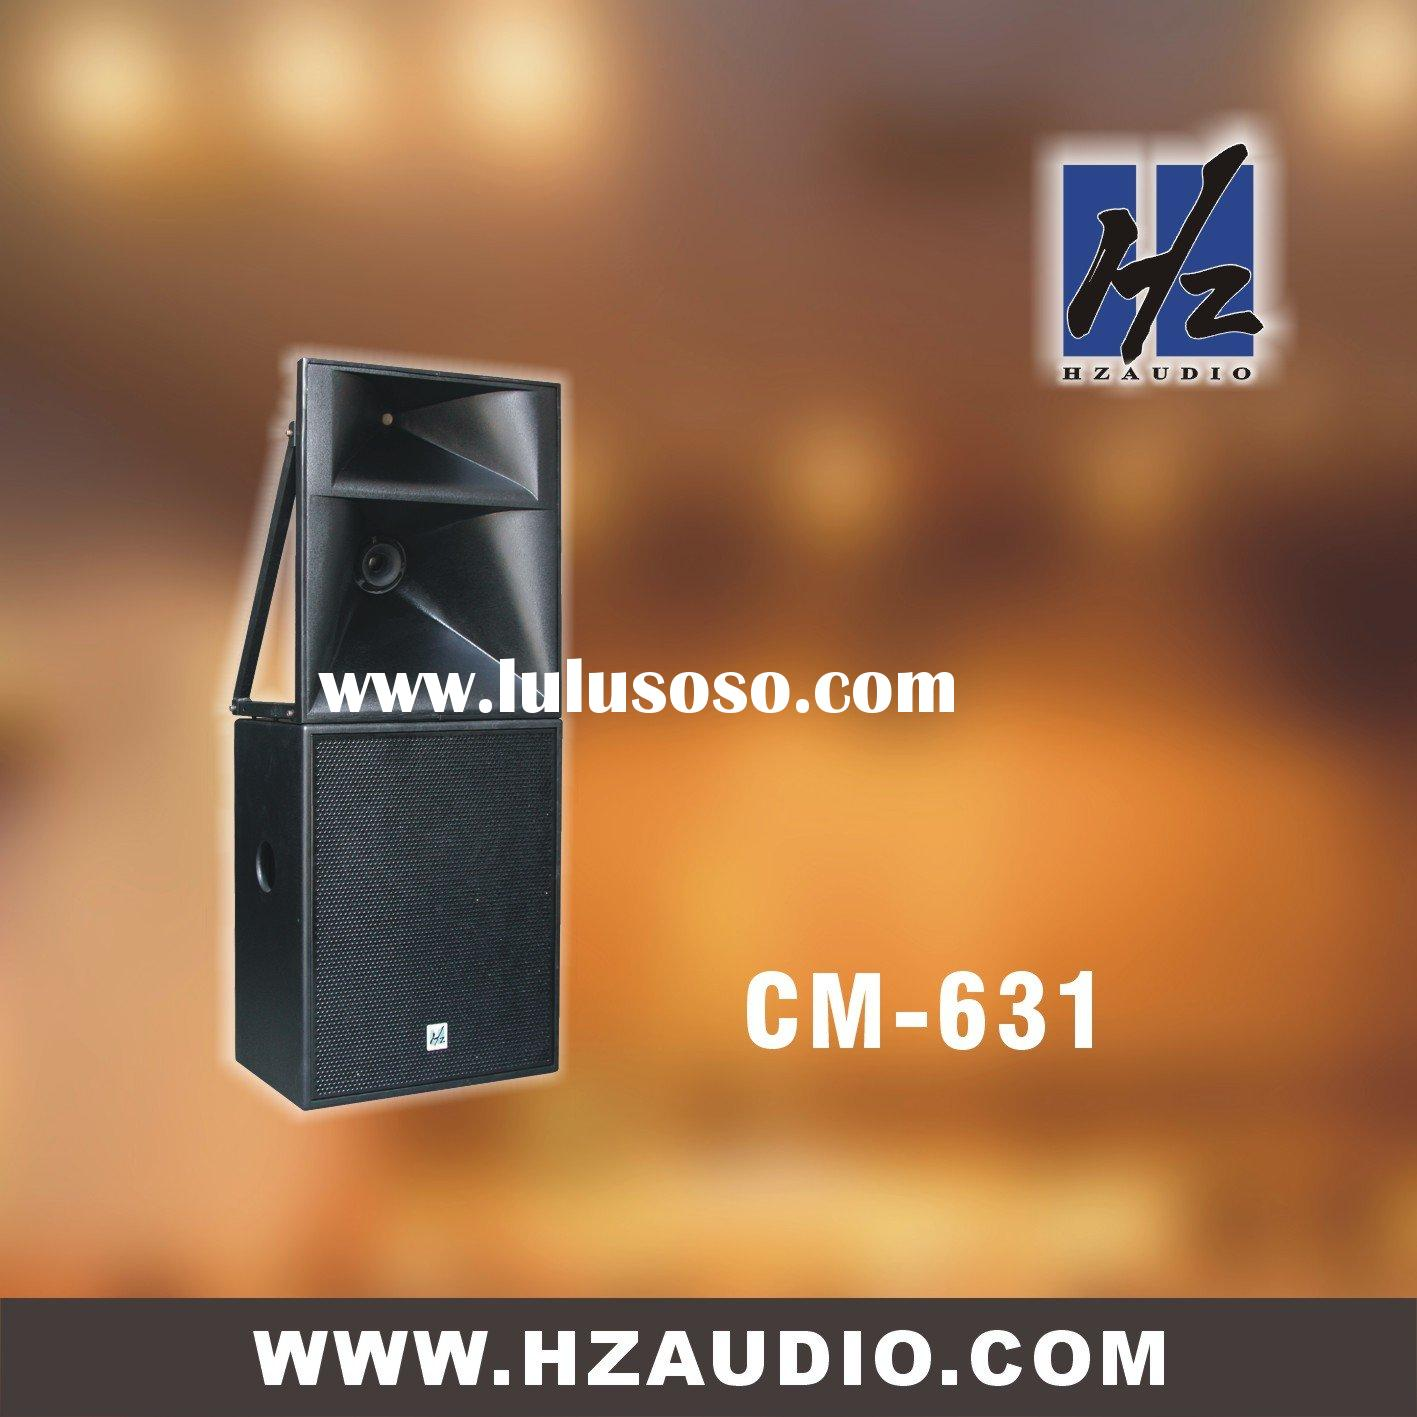 Professional audio loudspeaker/Cinema sound system/CM-931A/B